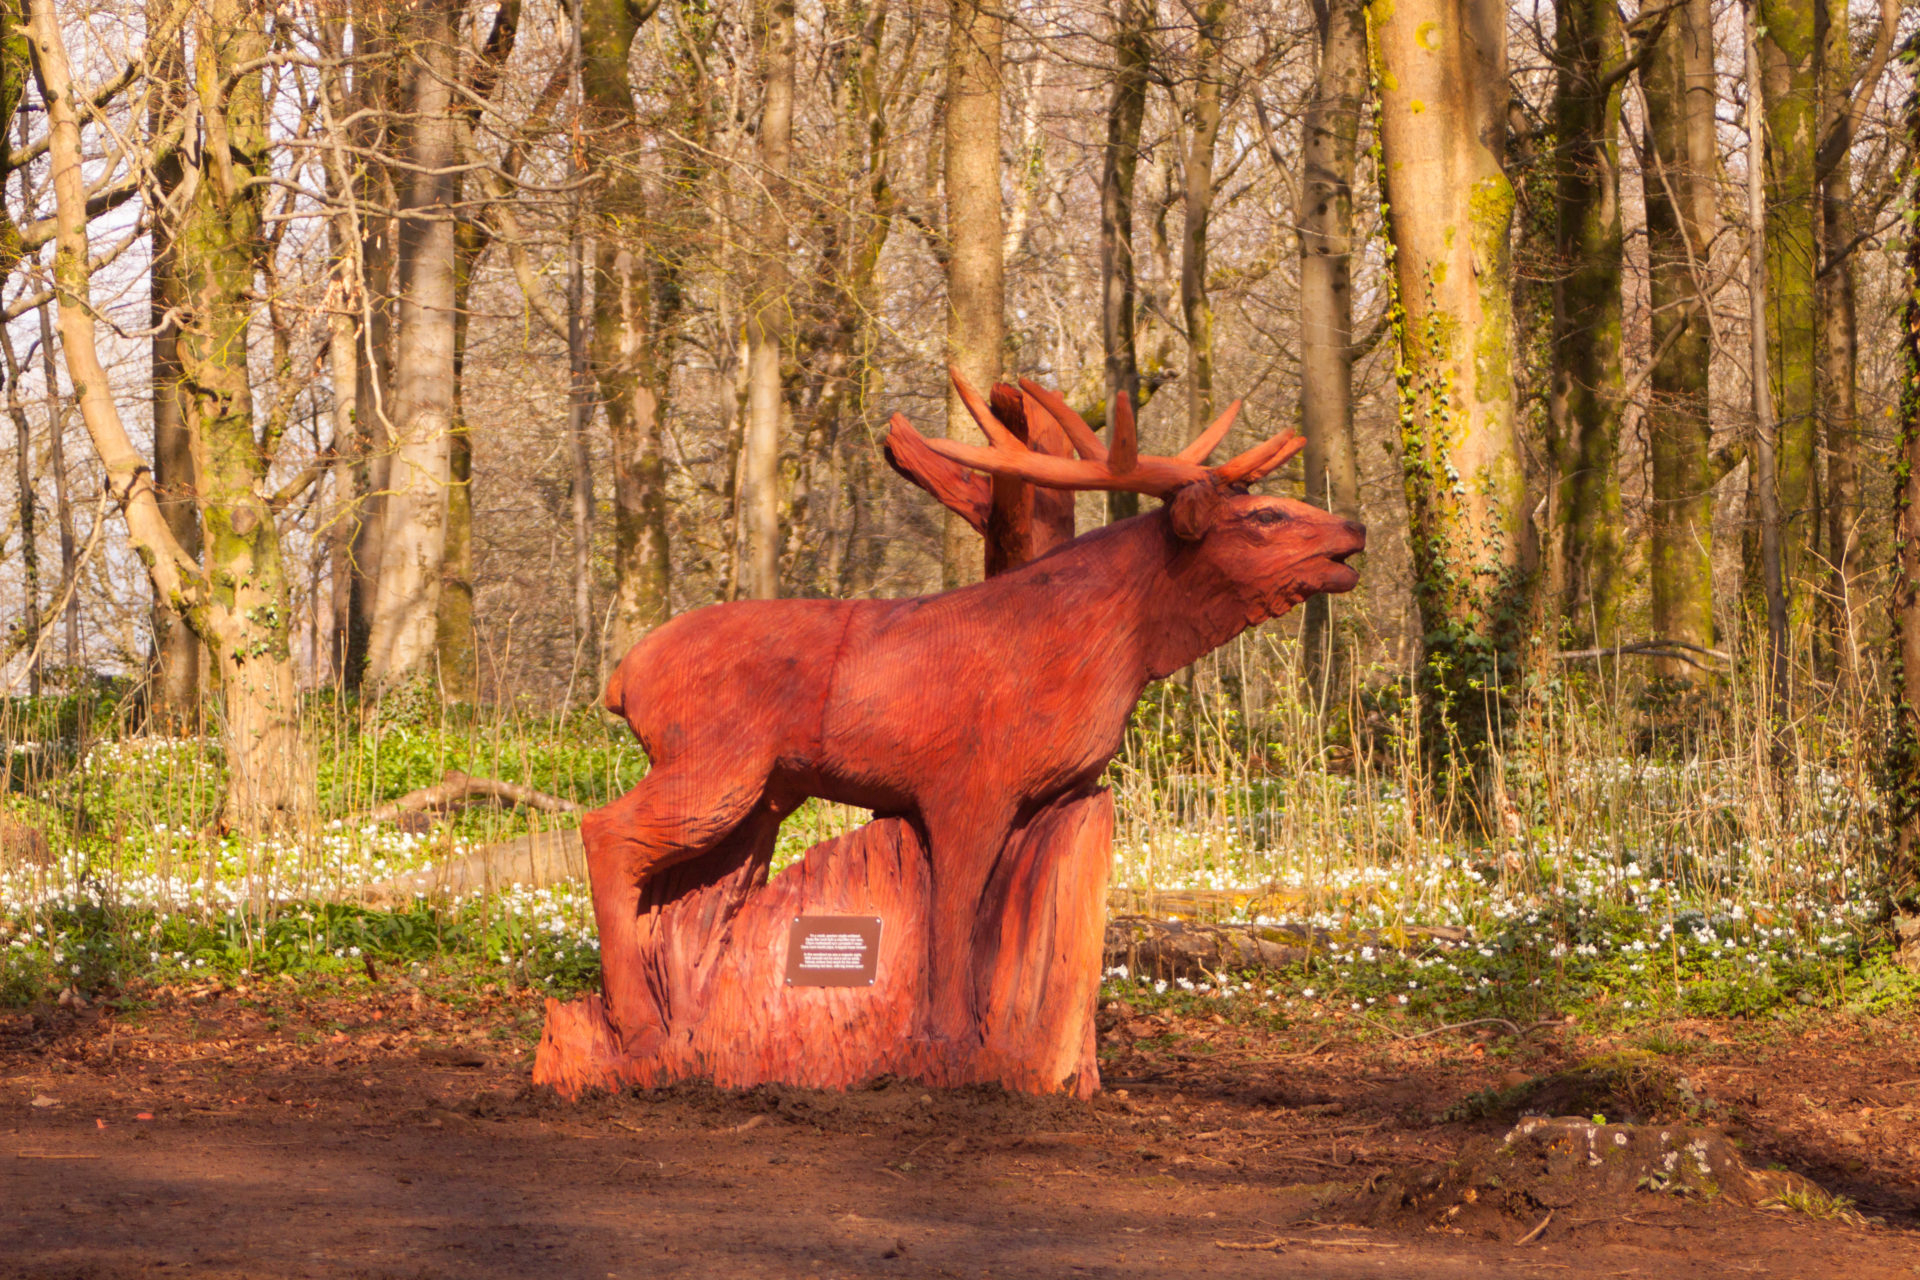 what to do with a diseased tree? this sculpture of a red deer was made from a dead redwood